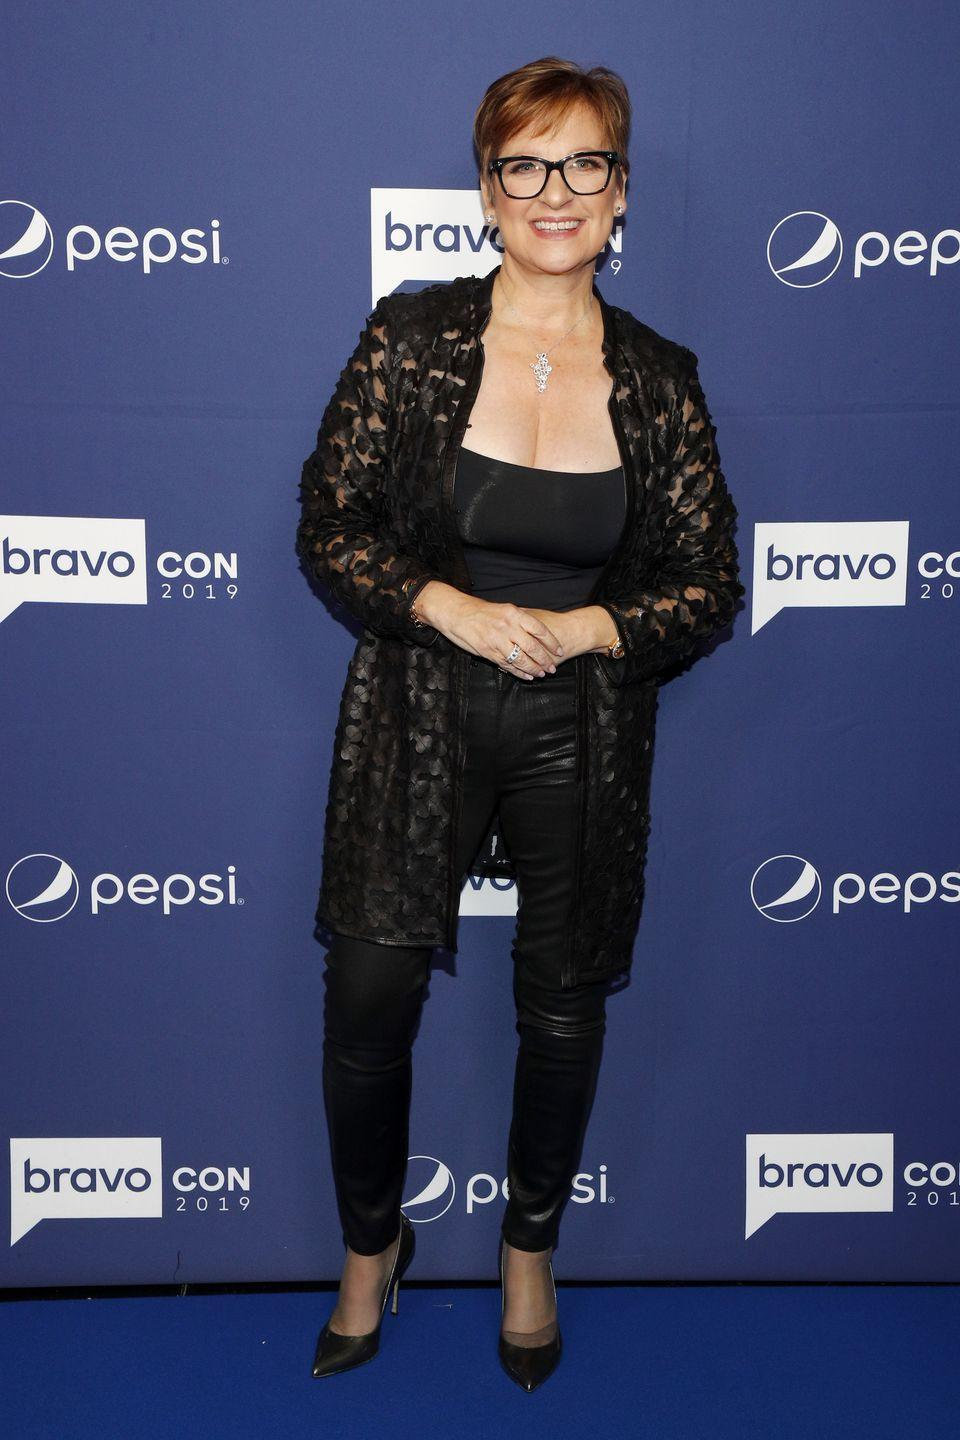 <p>Caroline Manzo was the matriarch of <em>New Jersey </em>for the show's first five seasons. She quit <em>Housewives</em> after season 5 amid a feud with fellow original Housewife Teresa Giudice. After walking away from <em>Housewives</em>, Caroline and her family spent three years on their own Bravo spinoff, <em>Manzo'd With Children</em>, which ended in 2016.</p>